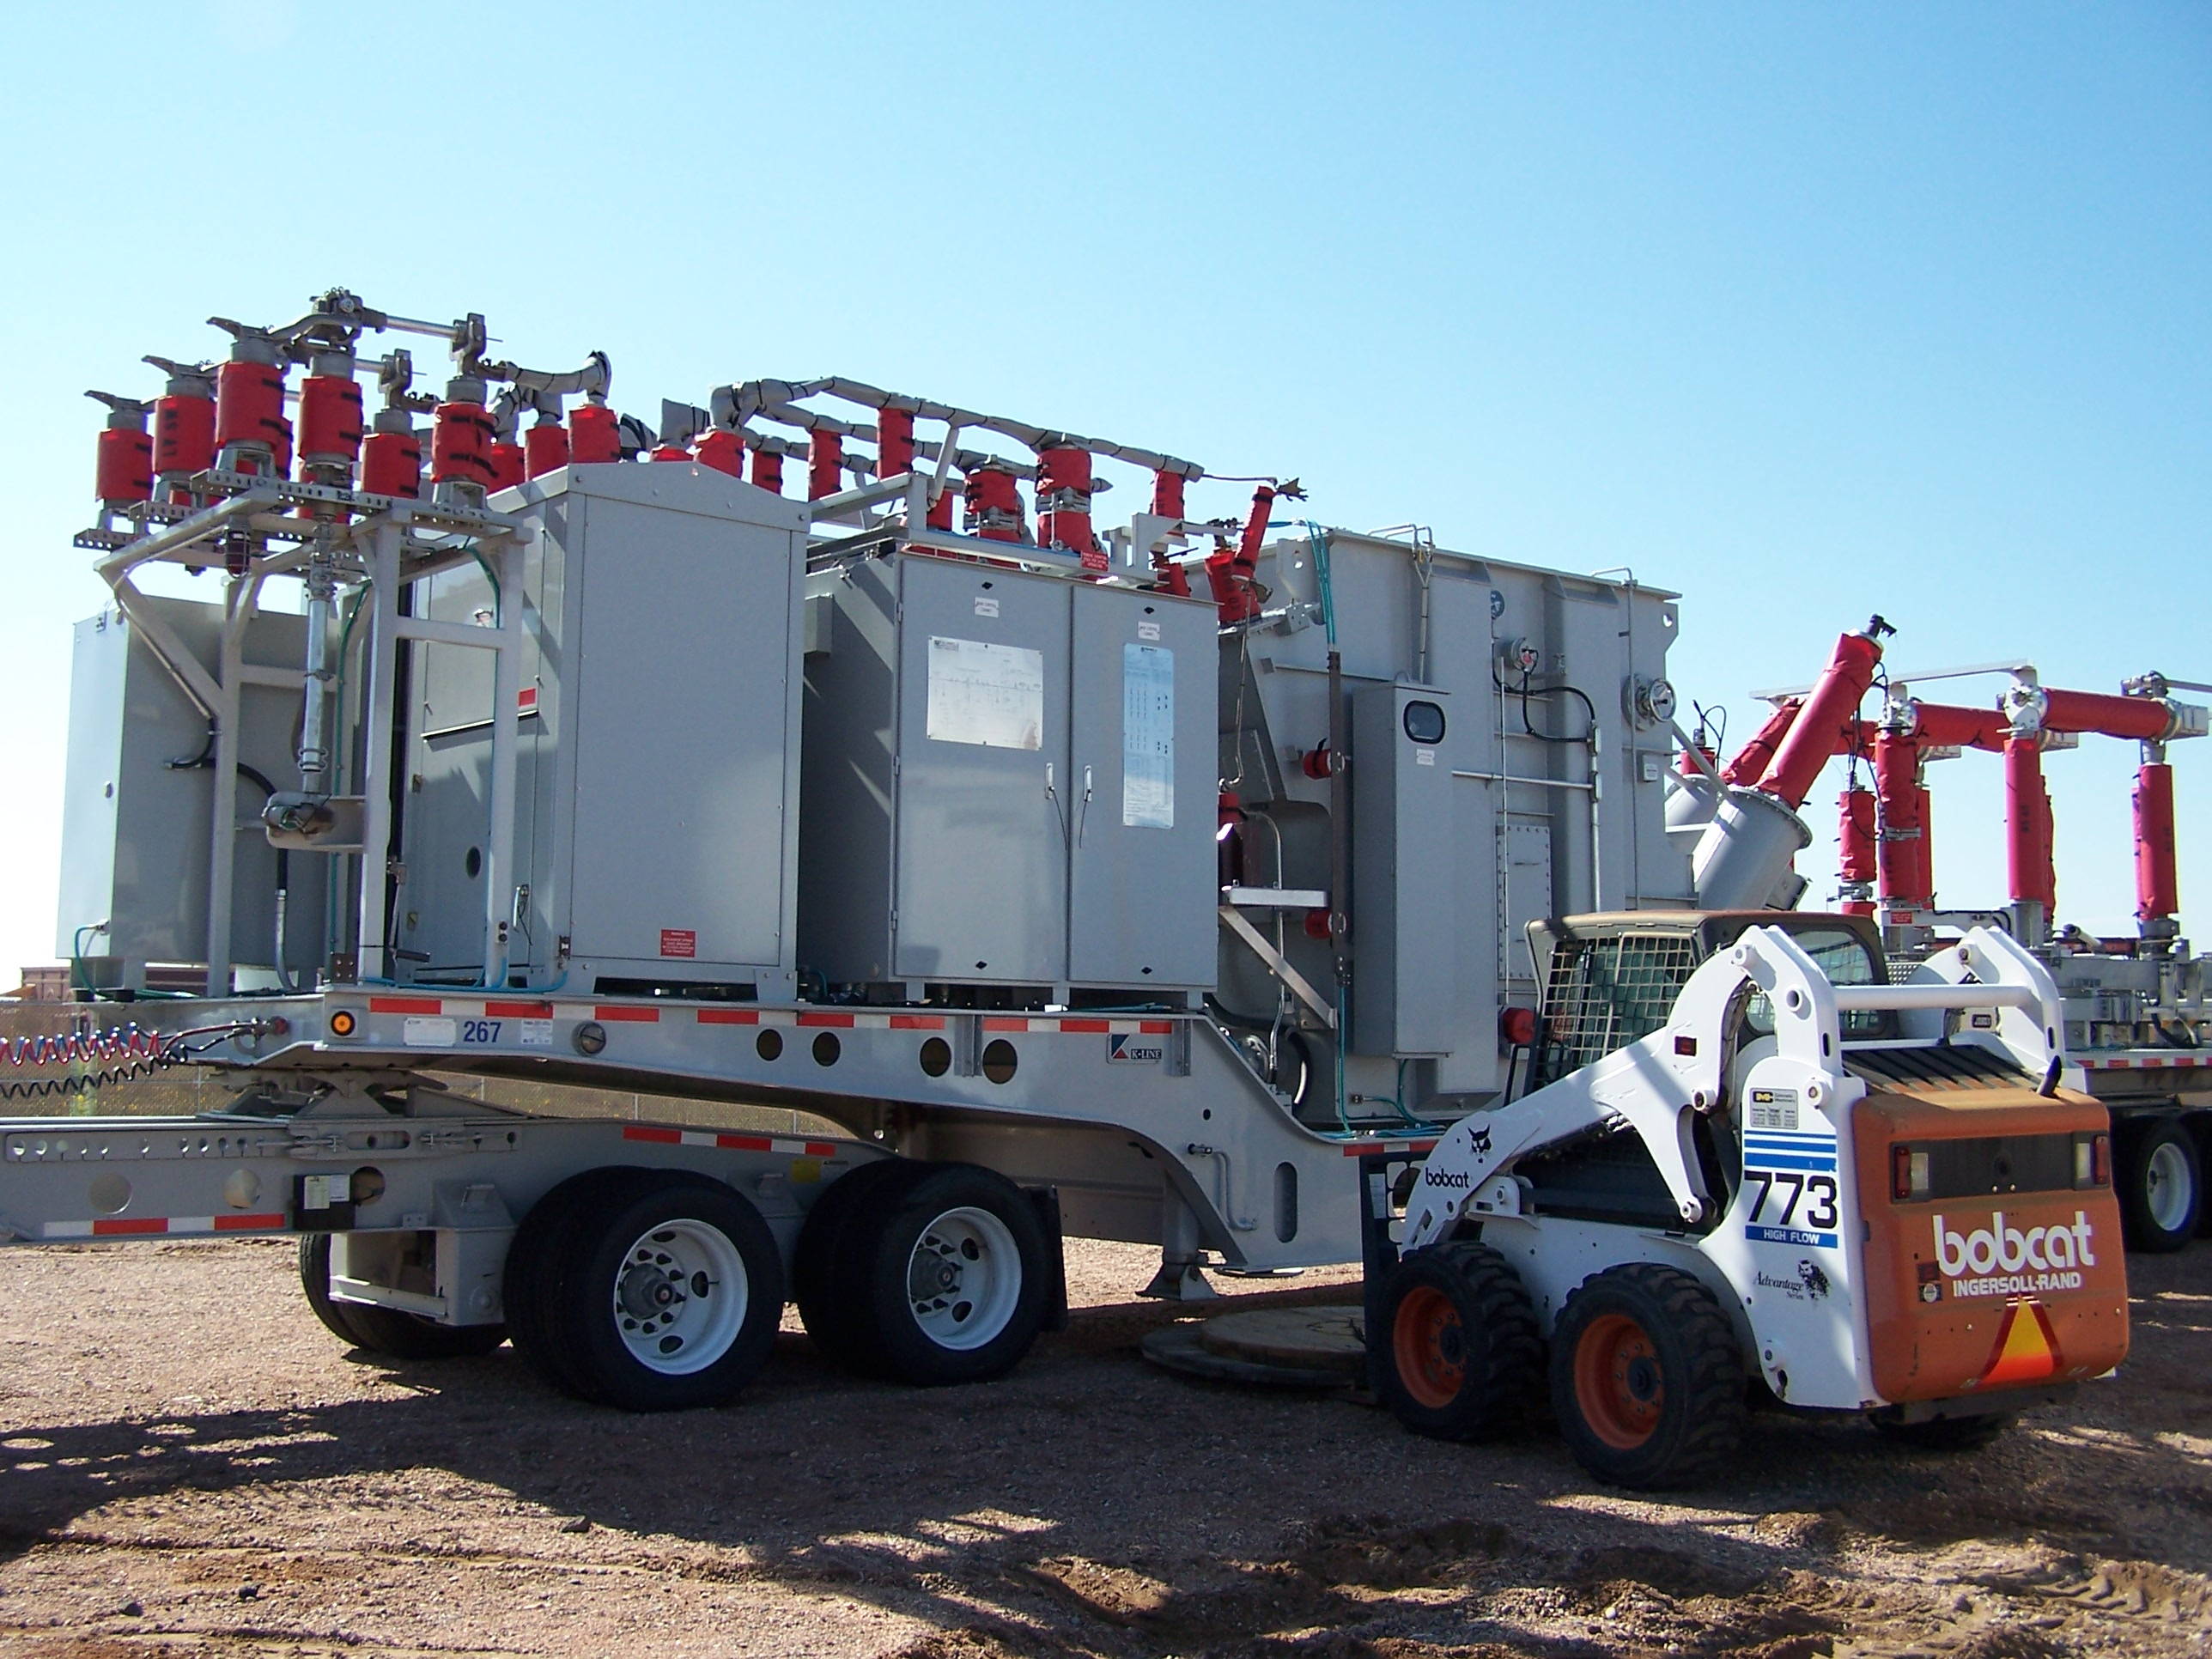 Preparing to set up and move the mobile power substation in an emergency.